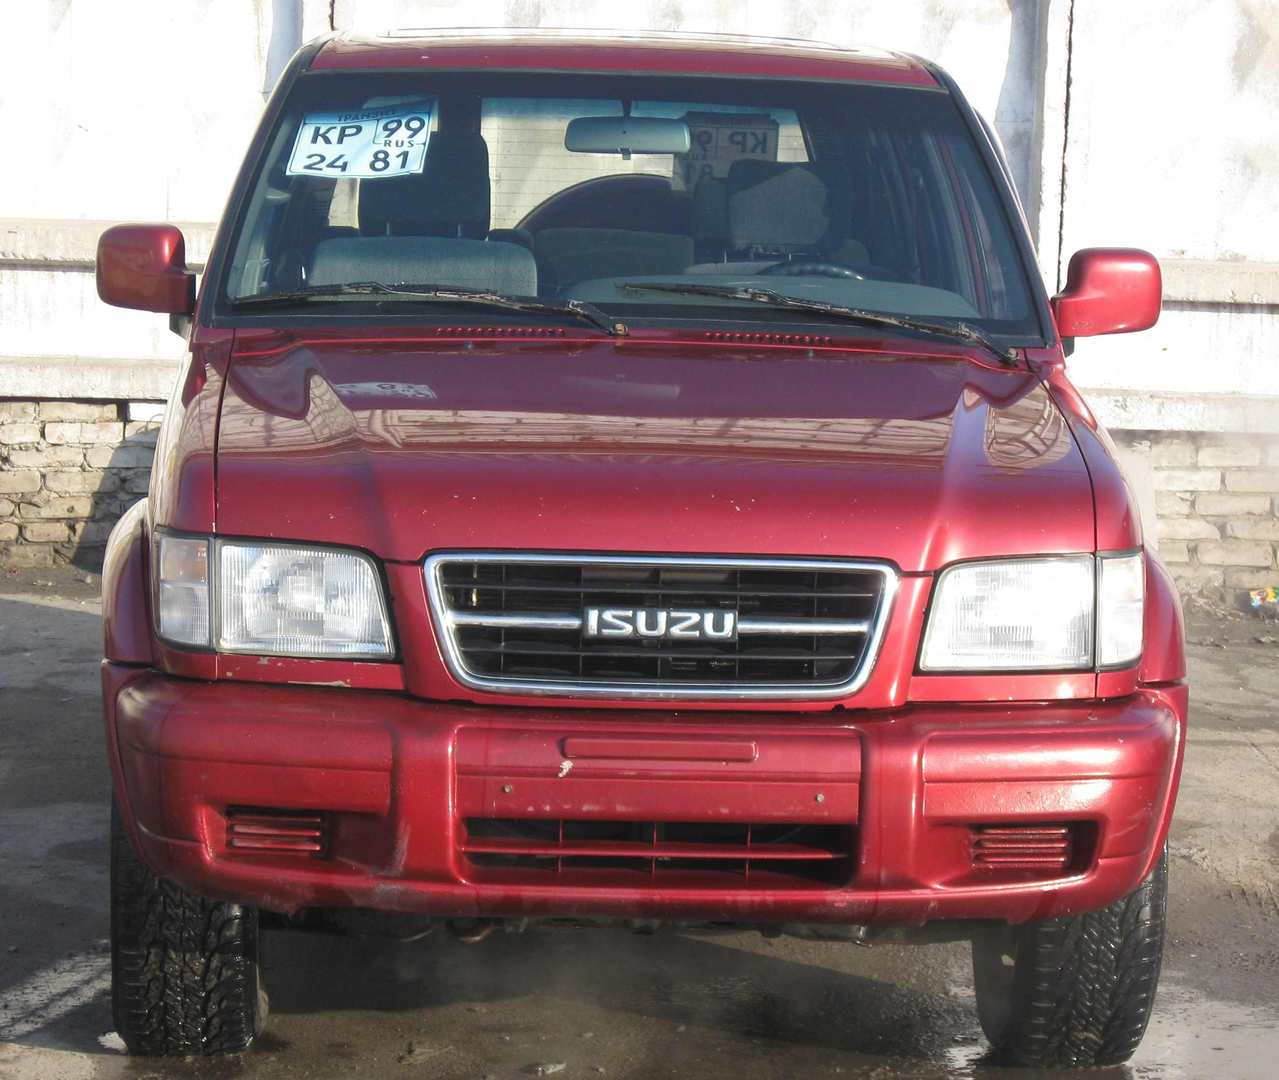 1998 Isuzu Trooper Photos, 3.5, Gasoline, Automatic For Sale